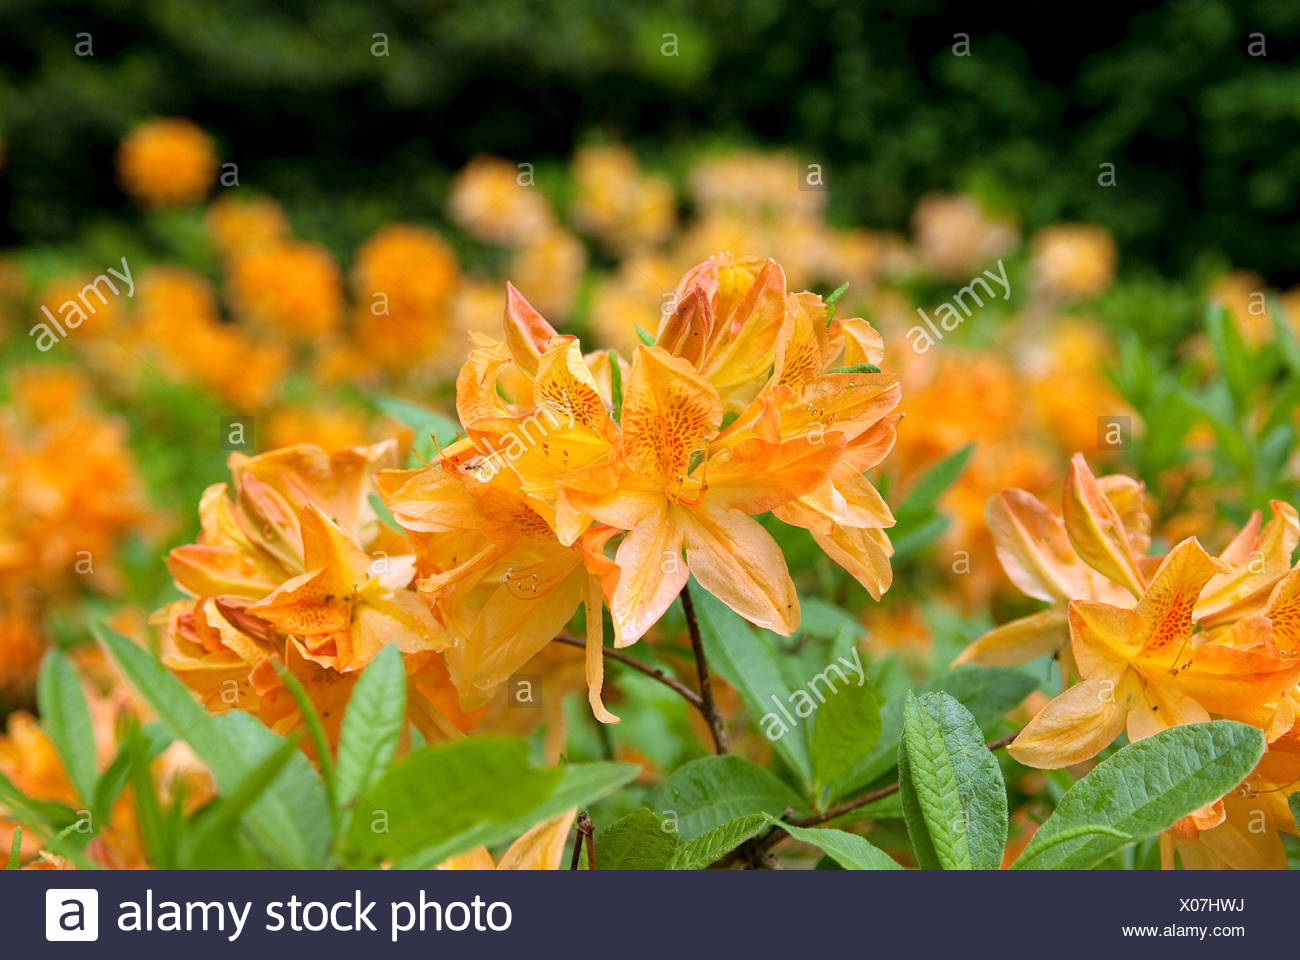 rhododendron (Rhododendron luteum 'T.J. Seidel', Rhododendron luteum T.J. Seidel), cultivar Joseph Dietzgen - Stock Image